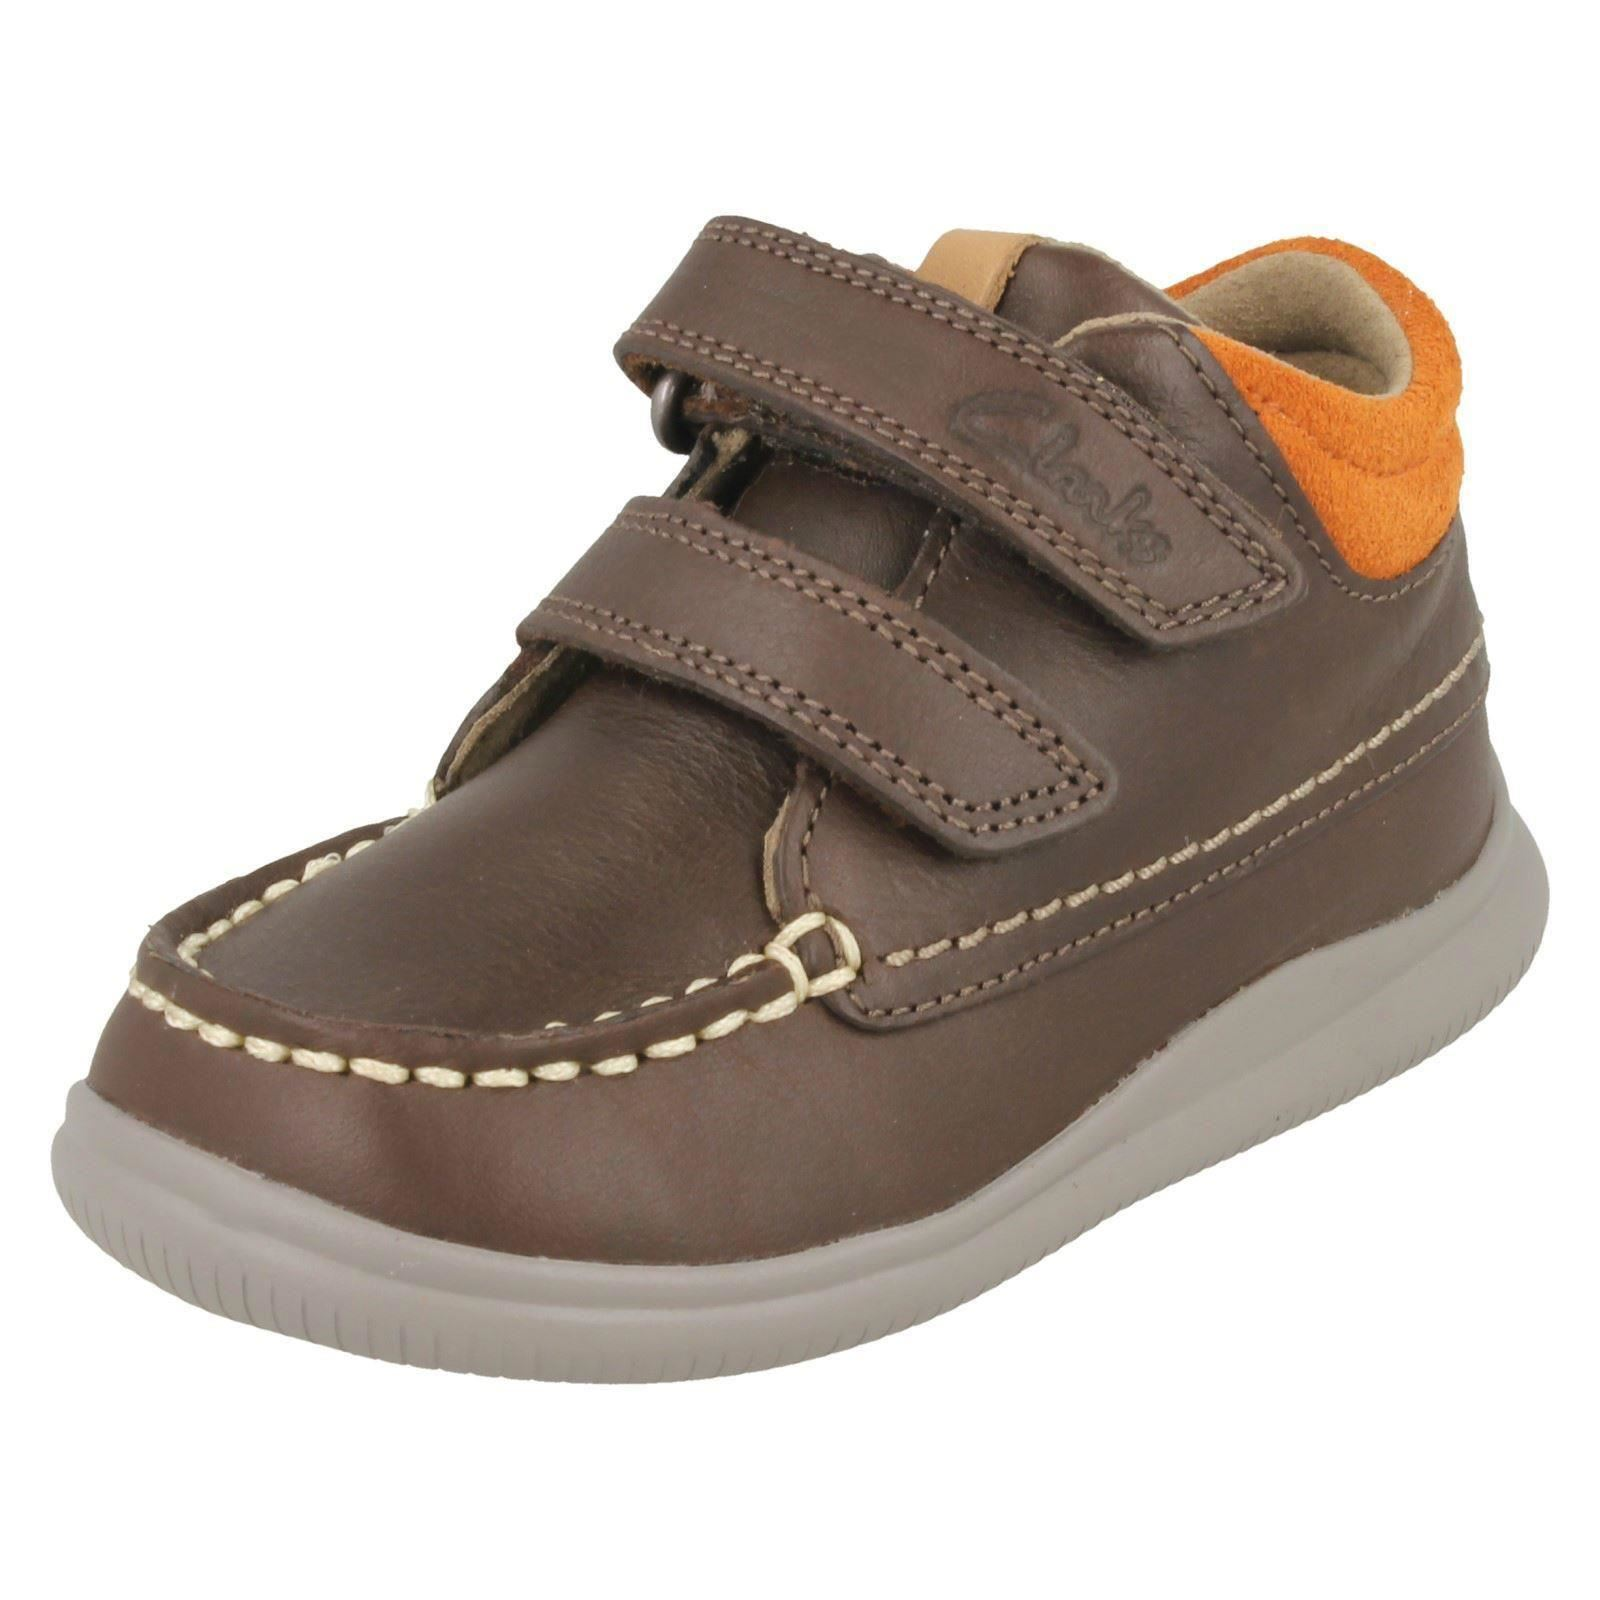 fc6d51b4fbd74e Clarks Cloud Tuktu FST Boys First BOOTS Brown 5½ F. About this product.  Picture 1 of 10  Picture 2 of 10 ...